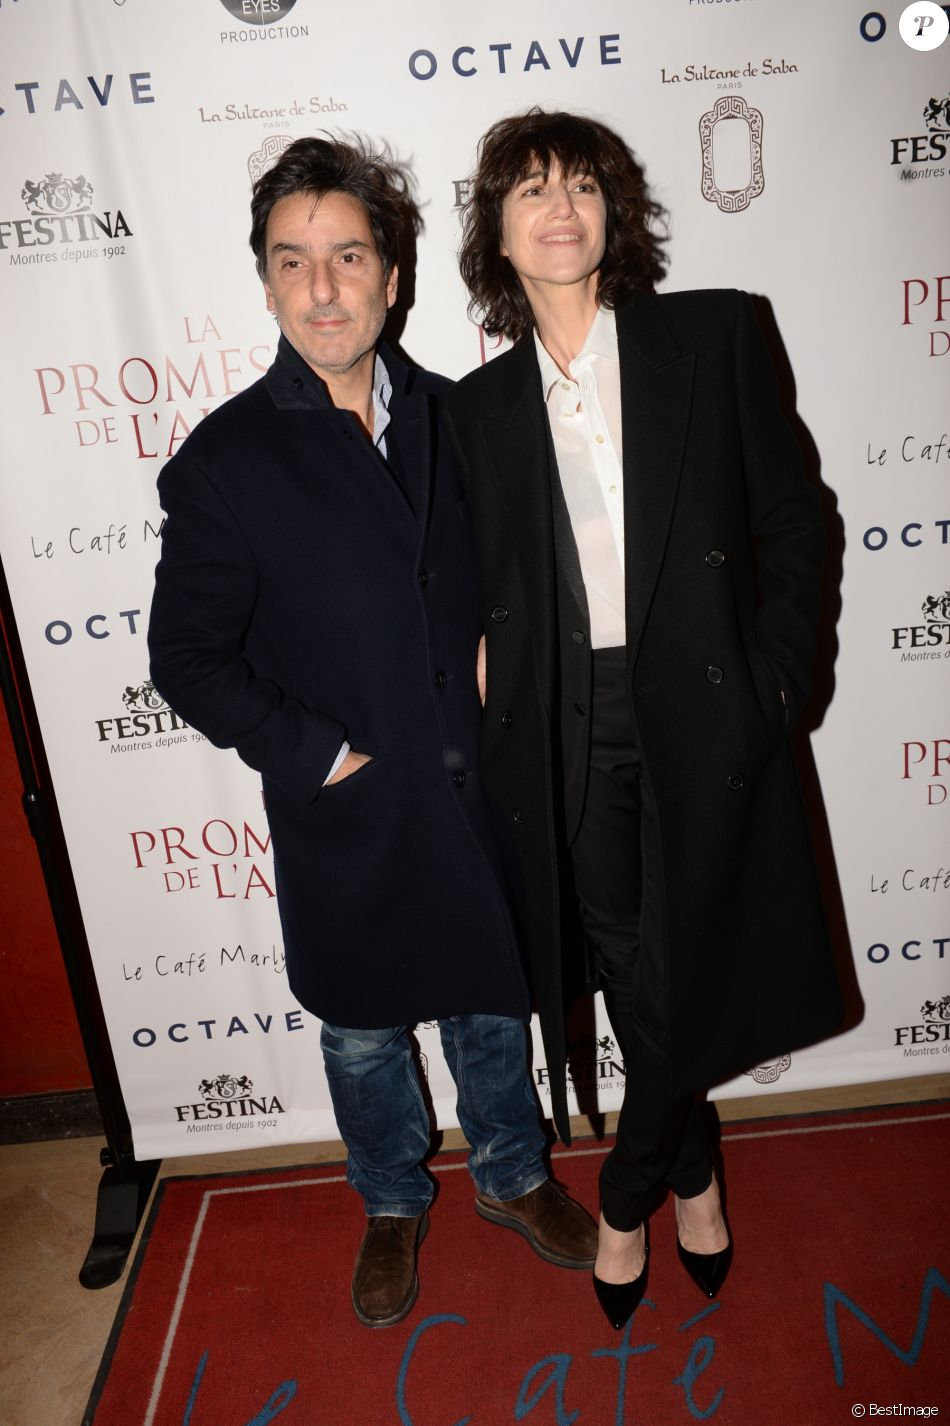 "Exclusif - Yvan Attal et sa compagne Charlotte Gainsbourg - After-party du film ""La Promesse de l'Aube"" d'Eric Barbier"" au restaurant Le Café Marly à Paris, France, le 12 décembre 2017. Evènement organisé par Five Eyes Production. © Rachid Bellak/Bestimage"